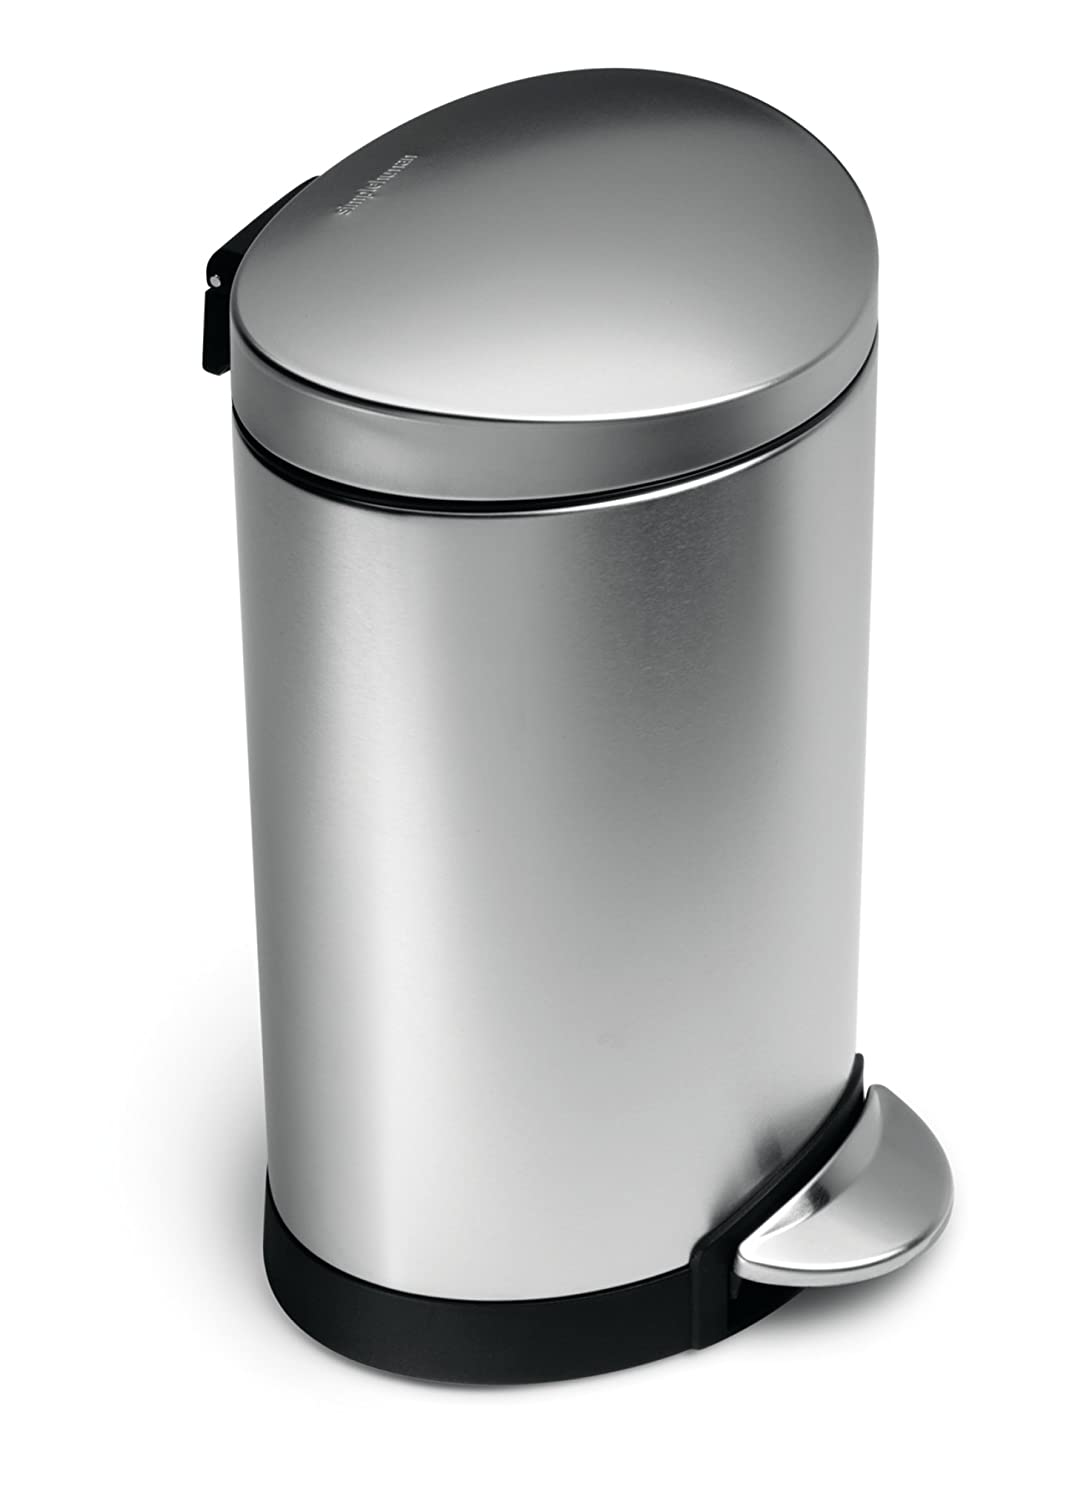 30 gallon kitchen trash can handmade table stainless steel garbage waste bin pedal